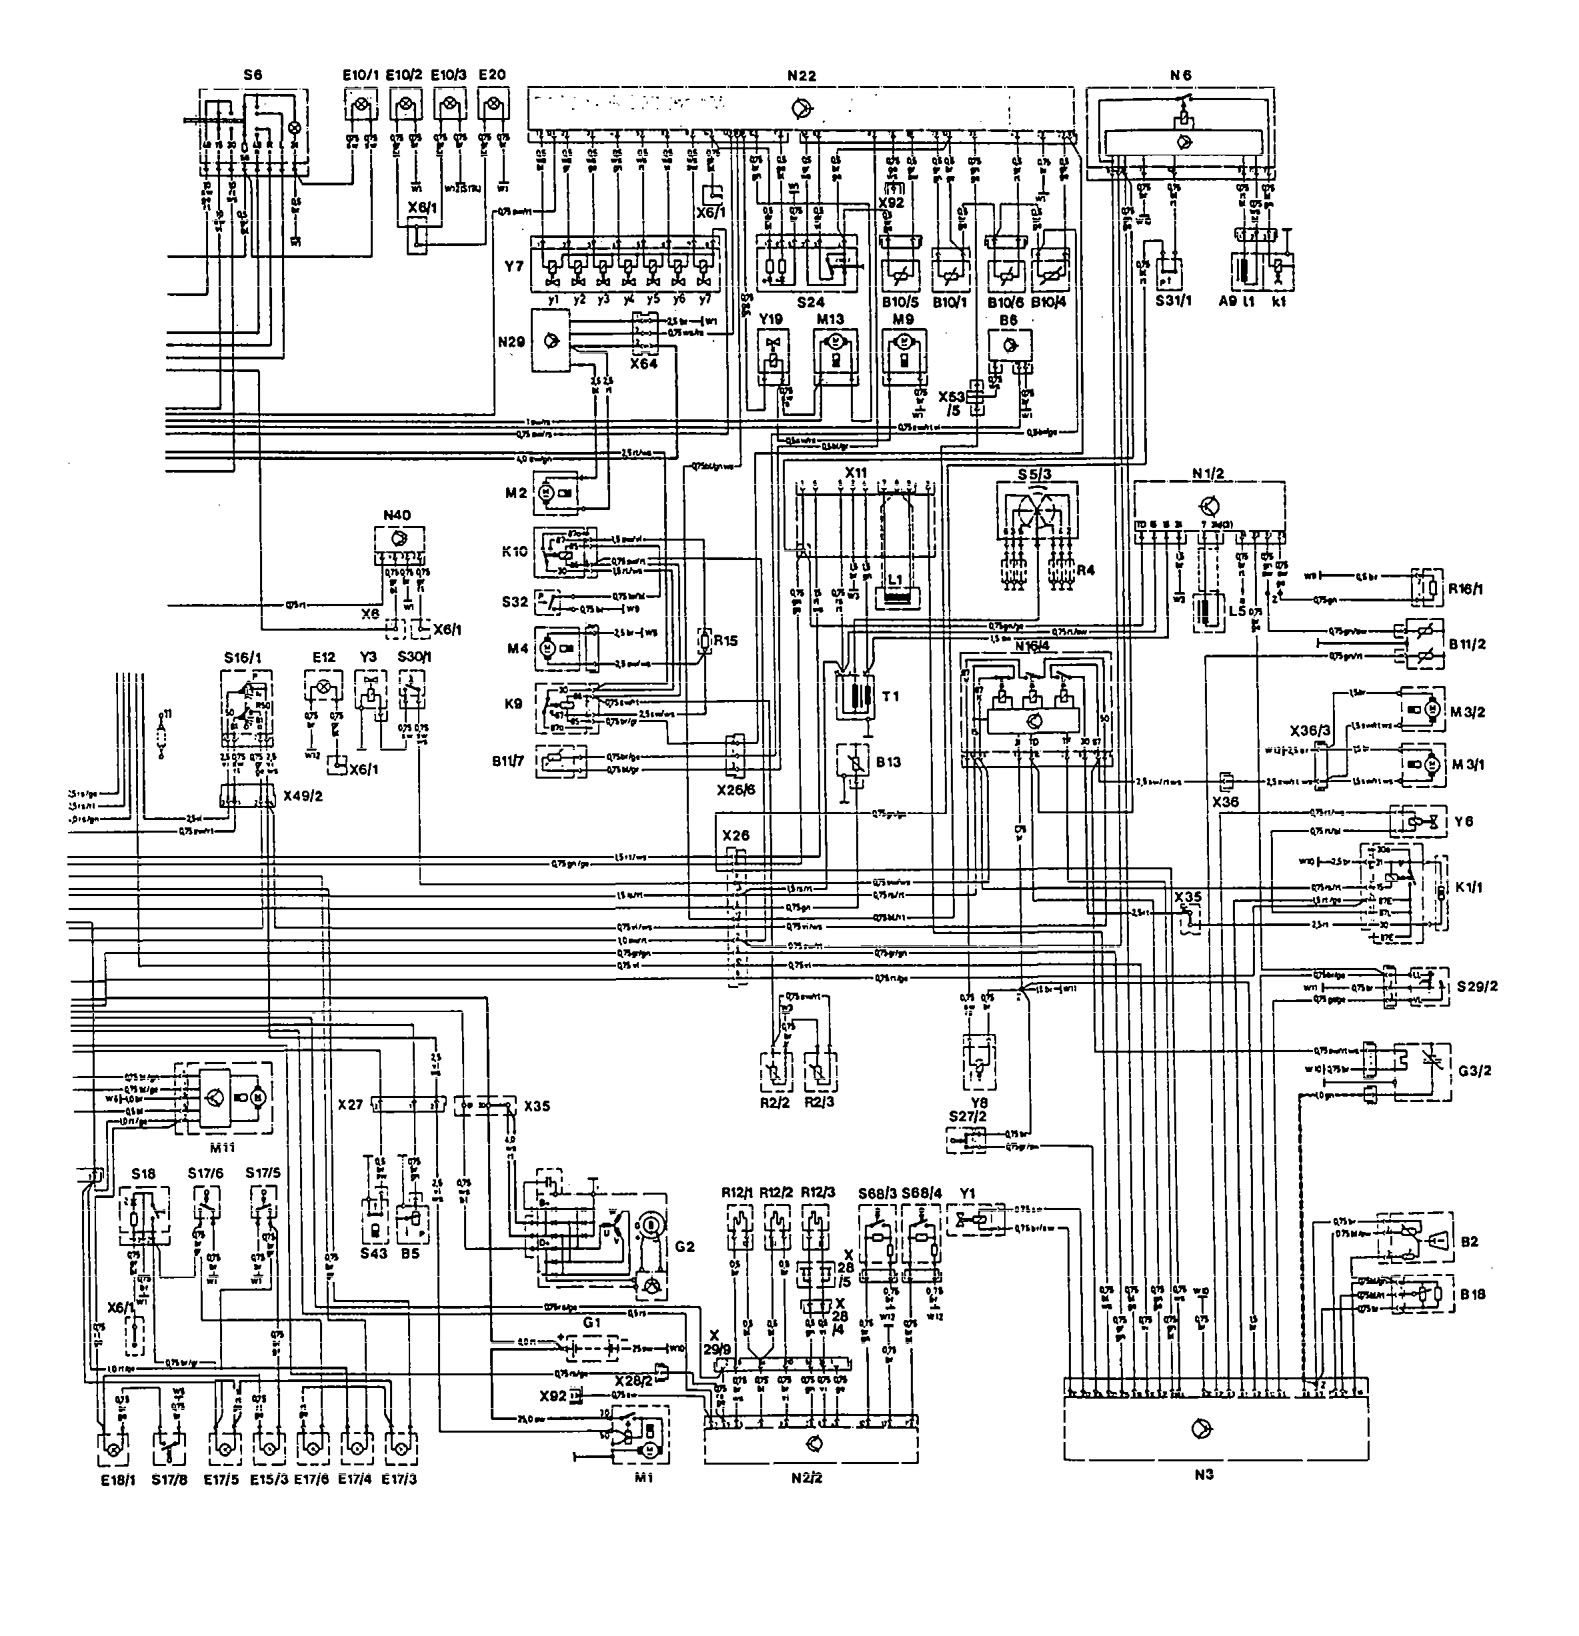 mercedes-benz 300e (1992) - wiring diagrams - igniition - carknowledge.info  carknowledge.info